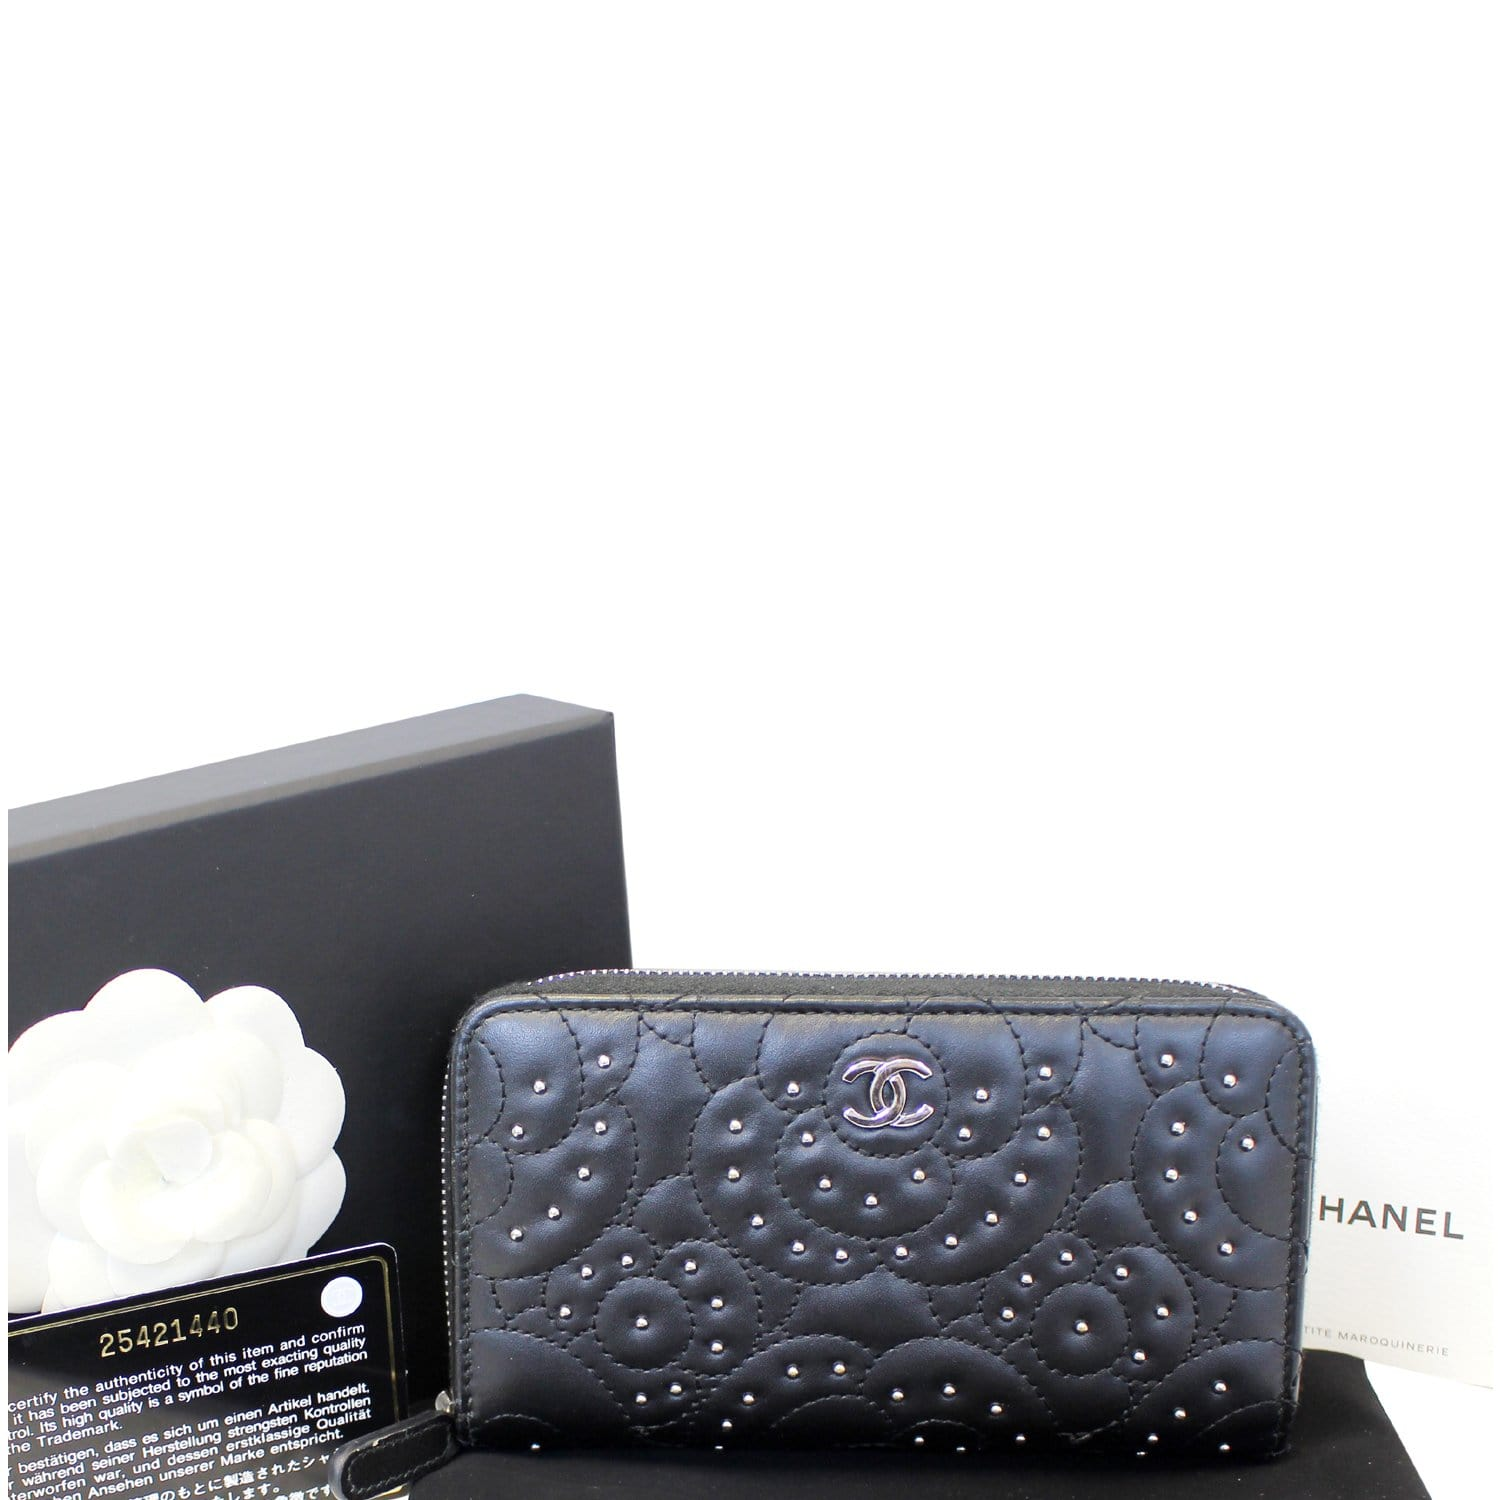 08235910864d CHANEL Camellia Long Zippy studded Wallet Black-US